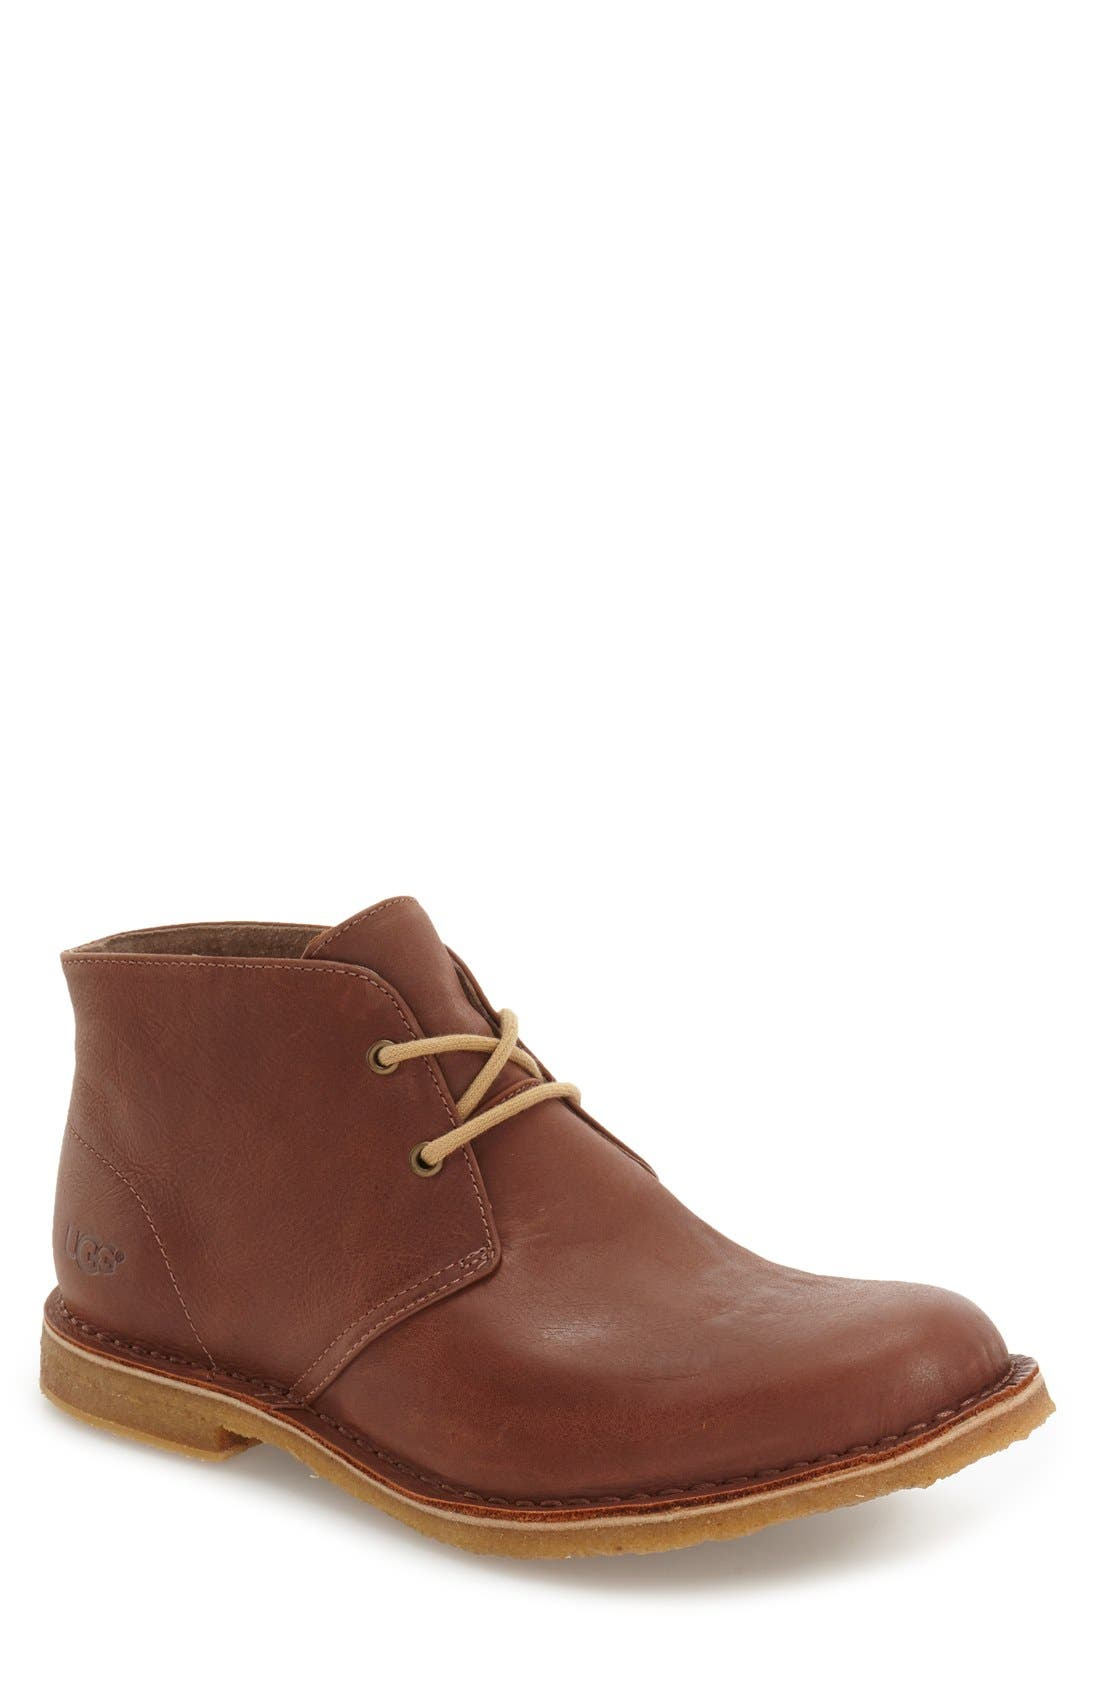 Leighton Chukka Boot,                         Main,                         color, British Tan Leather